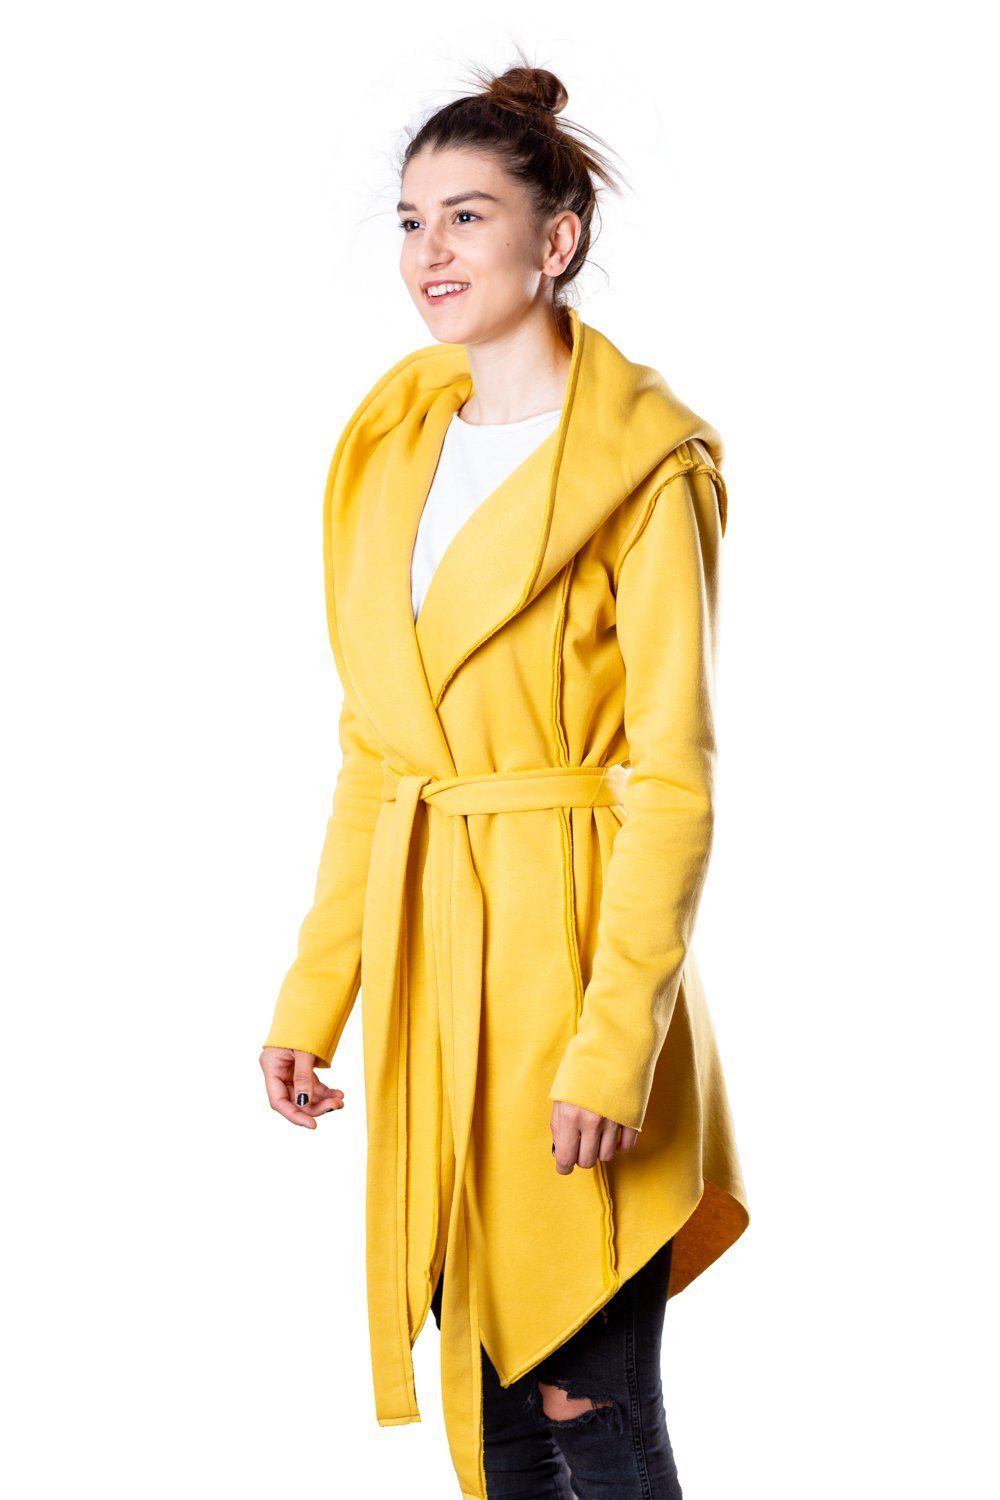 TheG Woman Designer Cardigan 2.0 // yellow